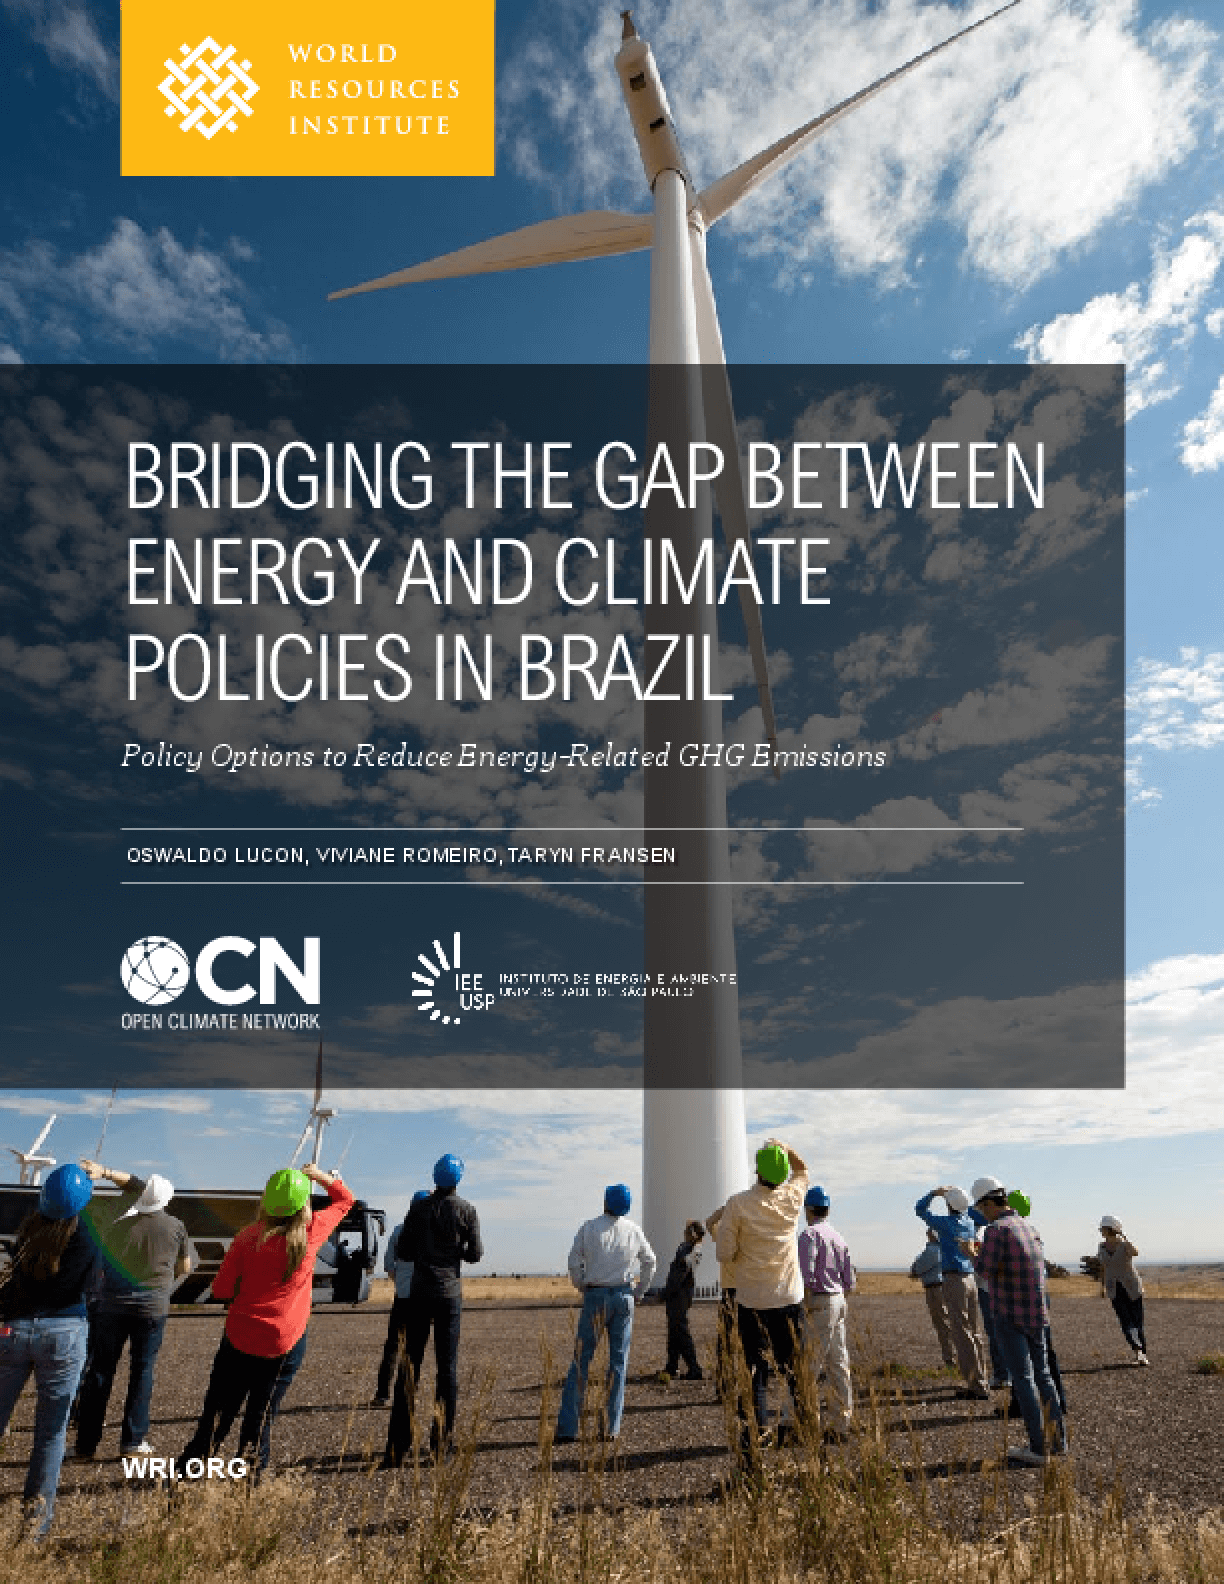 Bridging the Gap Between Energy and Climate Policies in Brazil: Policy Options to Reduce Energy-Related GHG Emissions